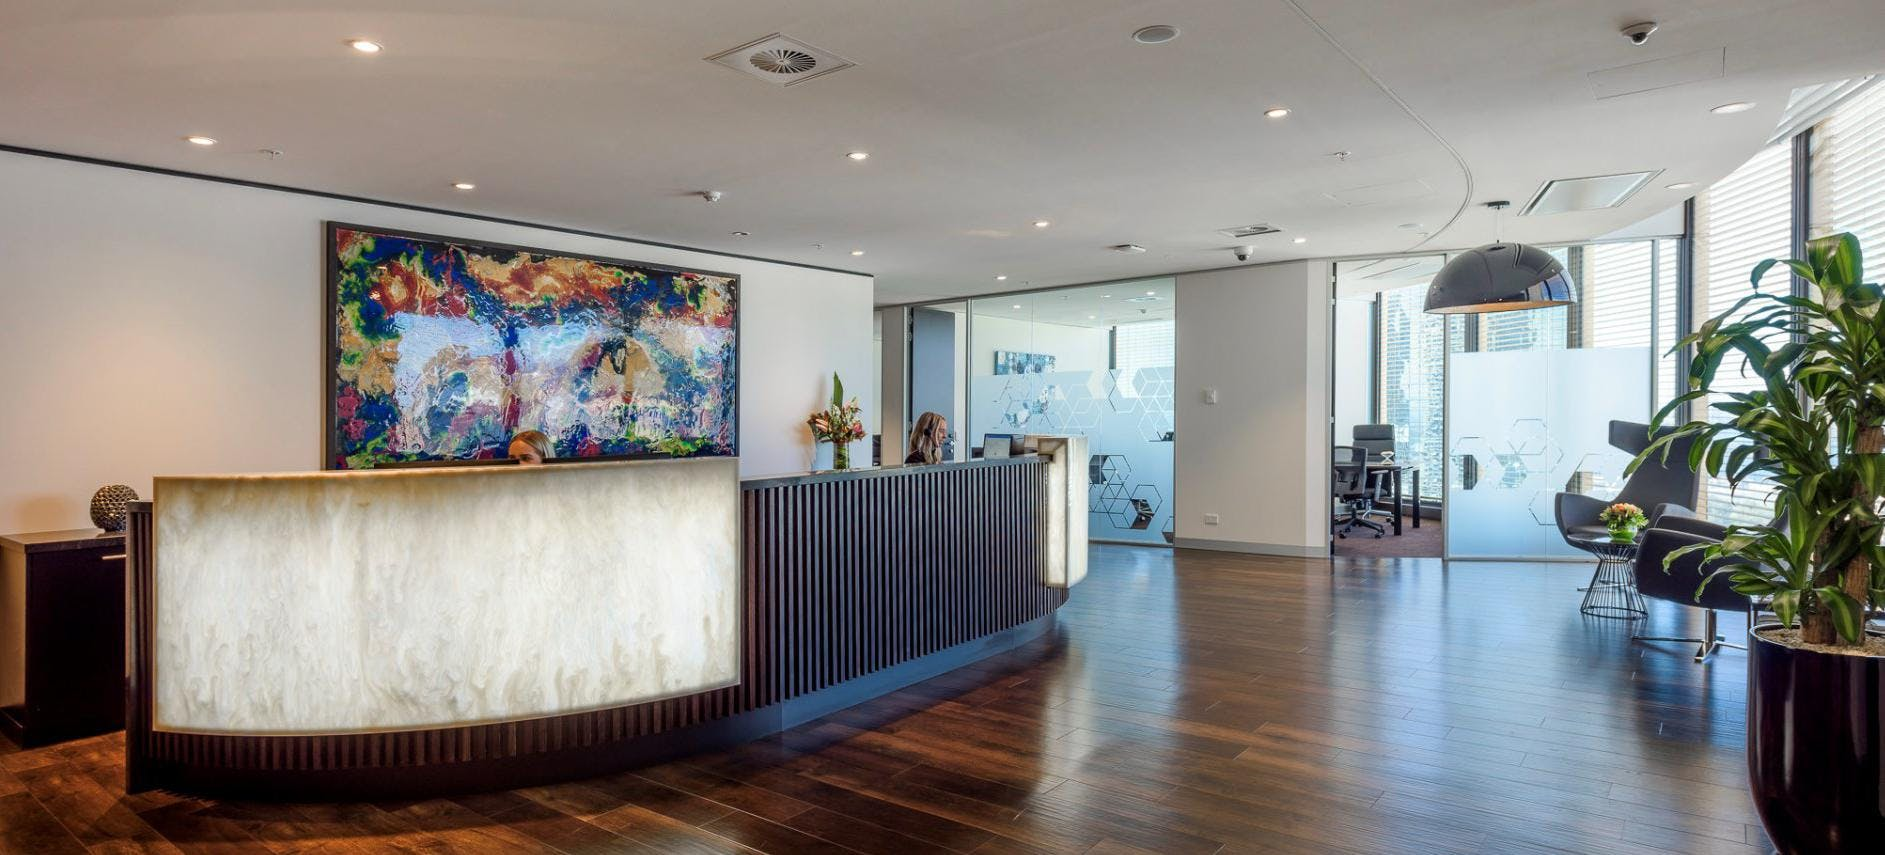 Suite 2326, serviced office at 200 George Street, image 6